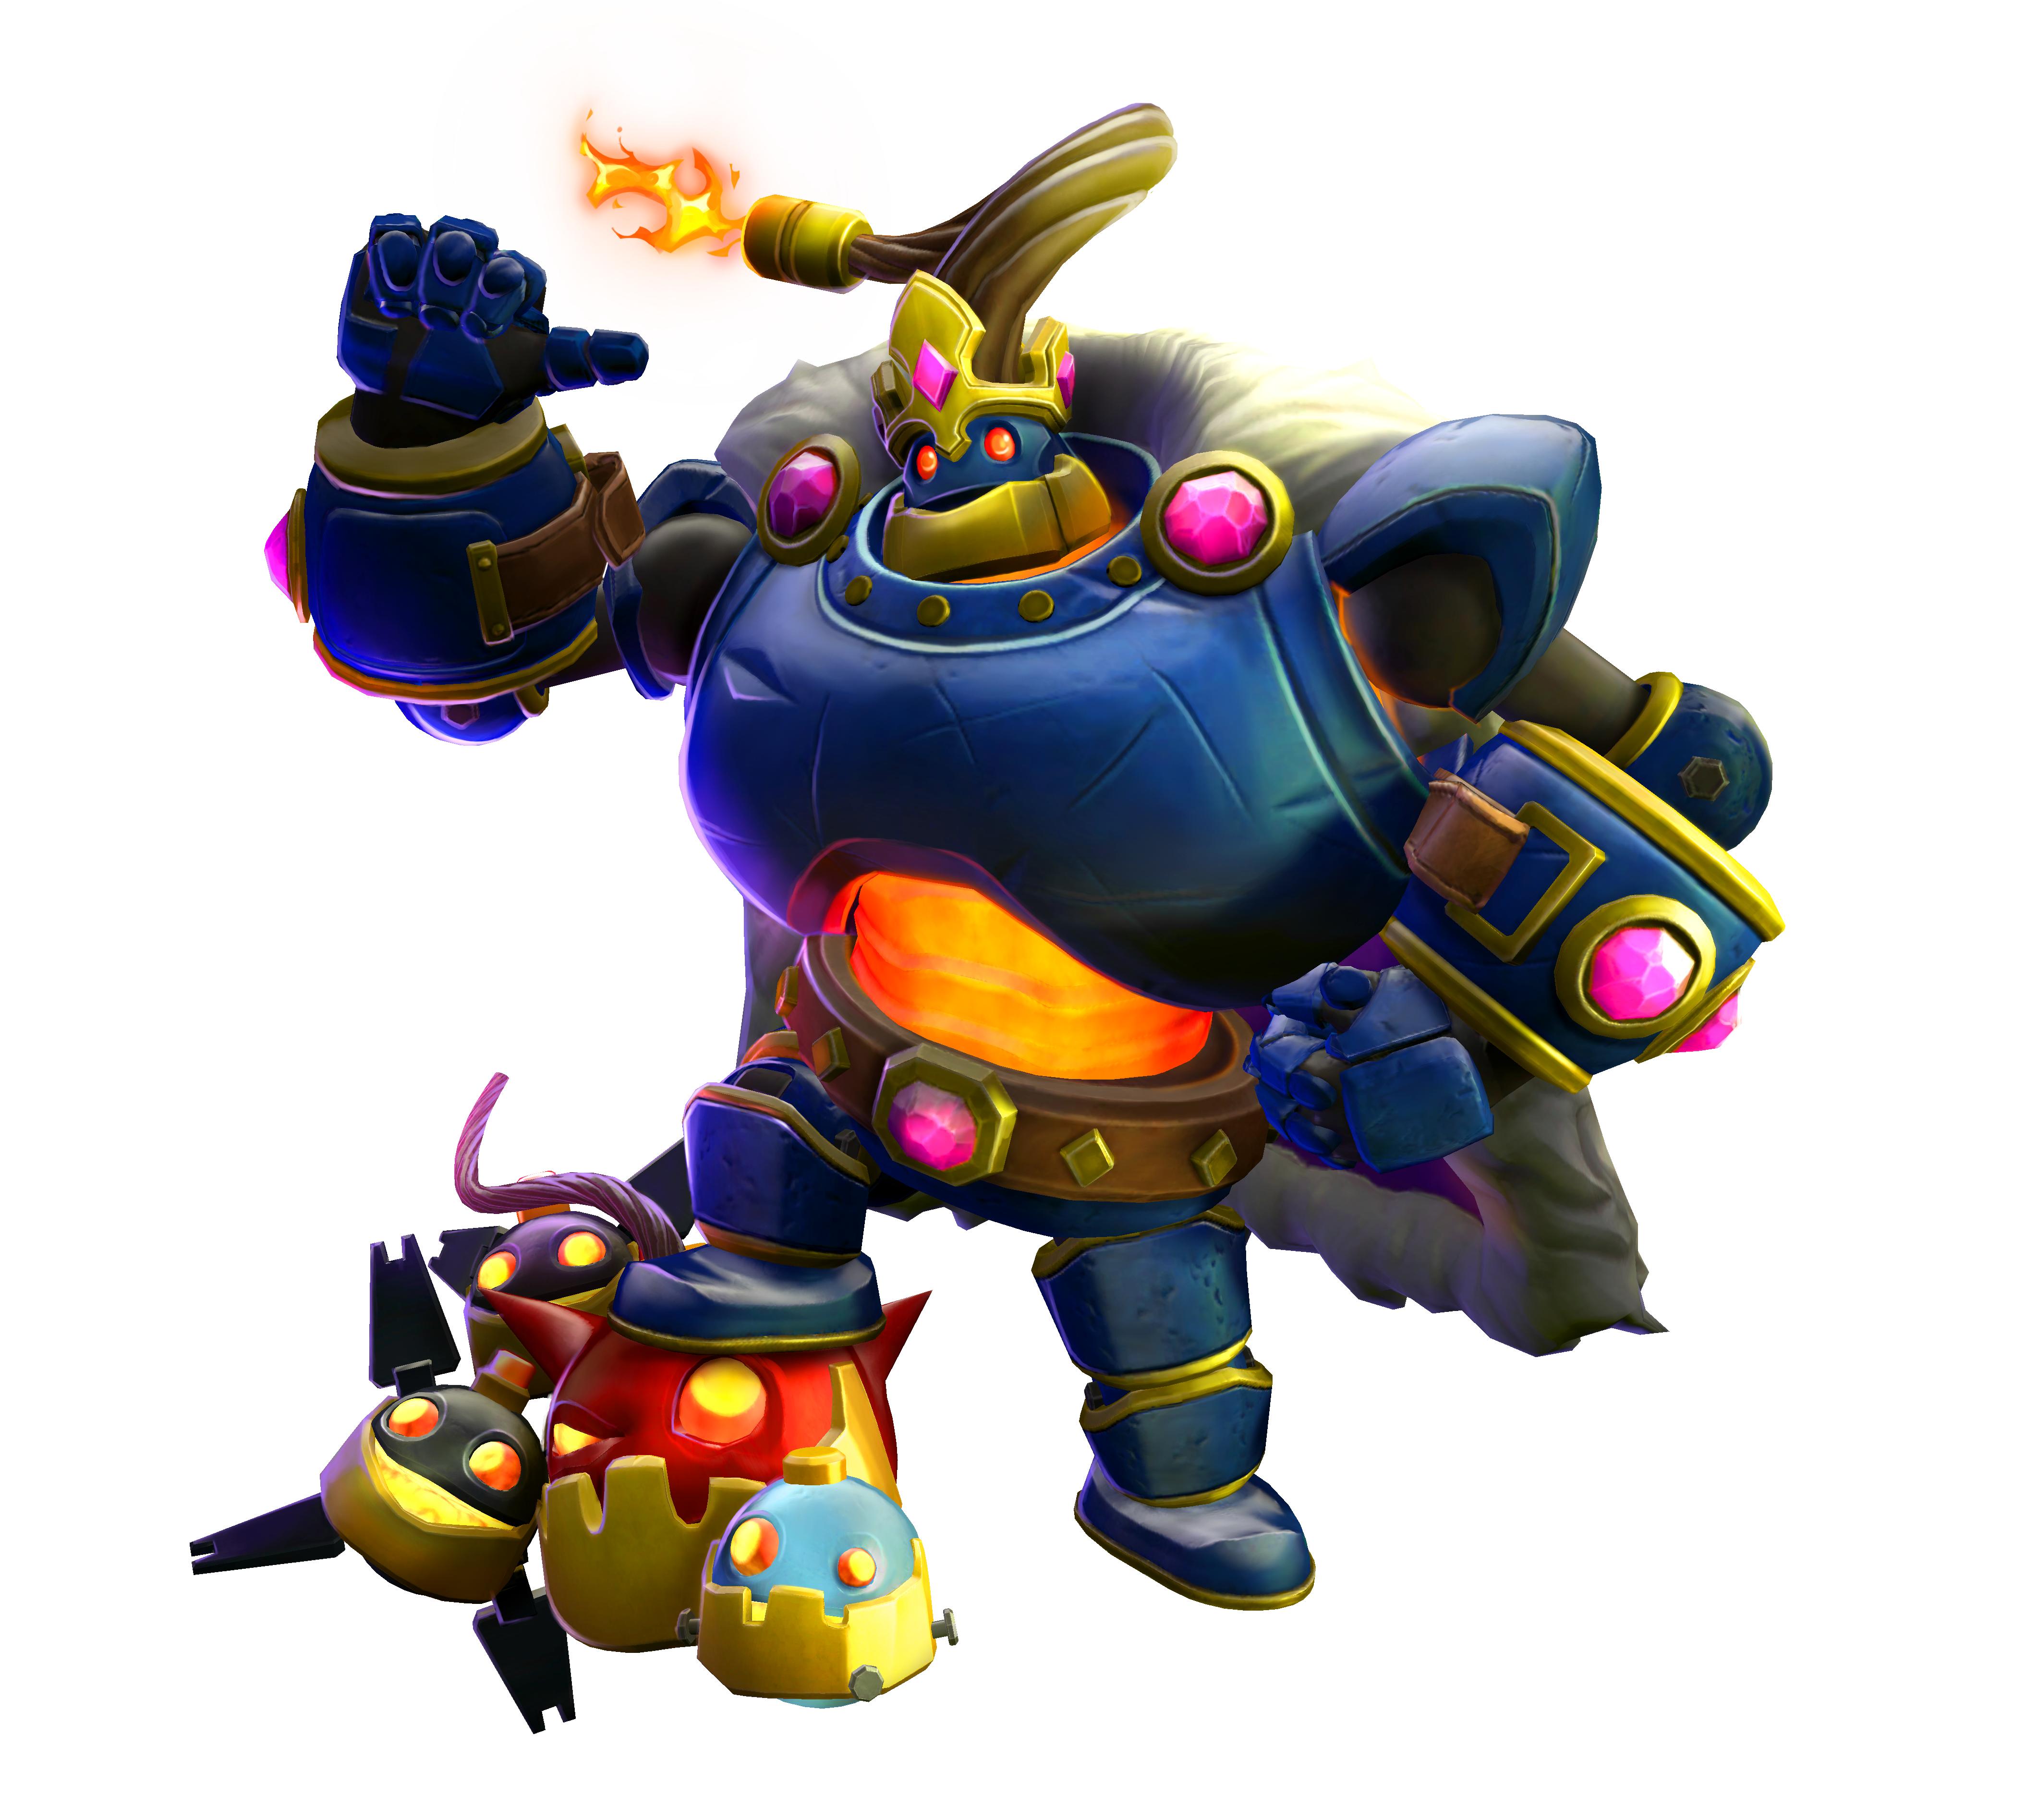 Paladins bomb king png. Hd wallpapers background